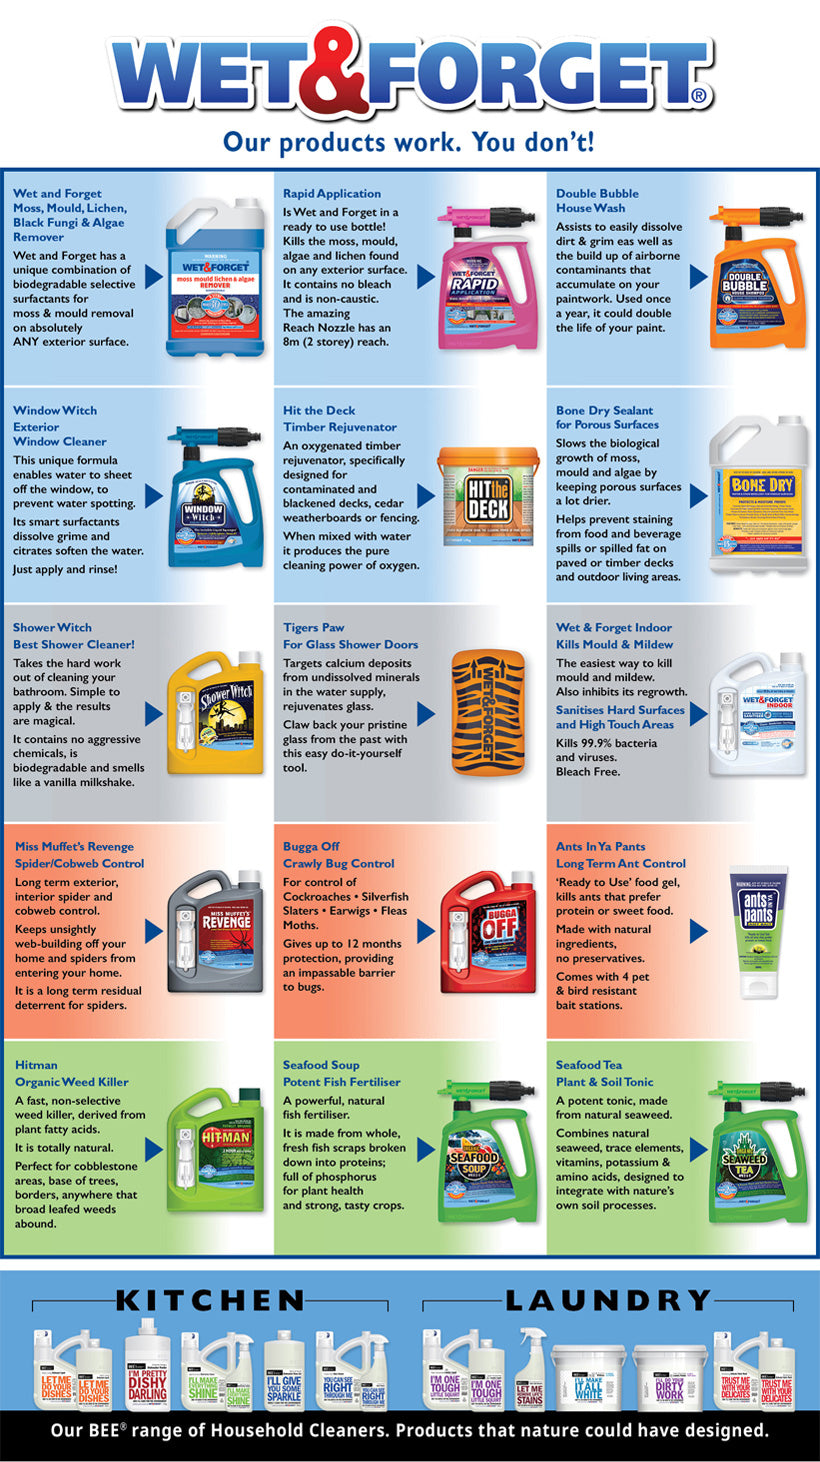 Wet & Forget Has a Huge Product Range to Suit Your Needs